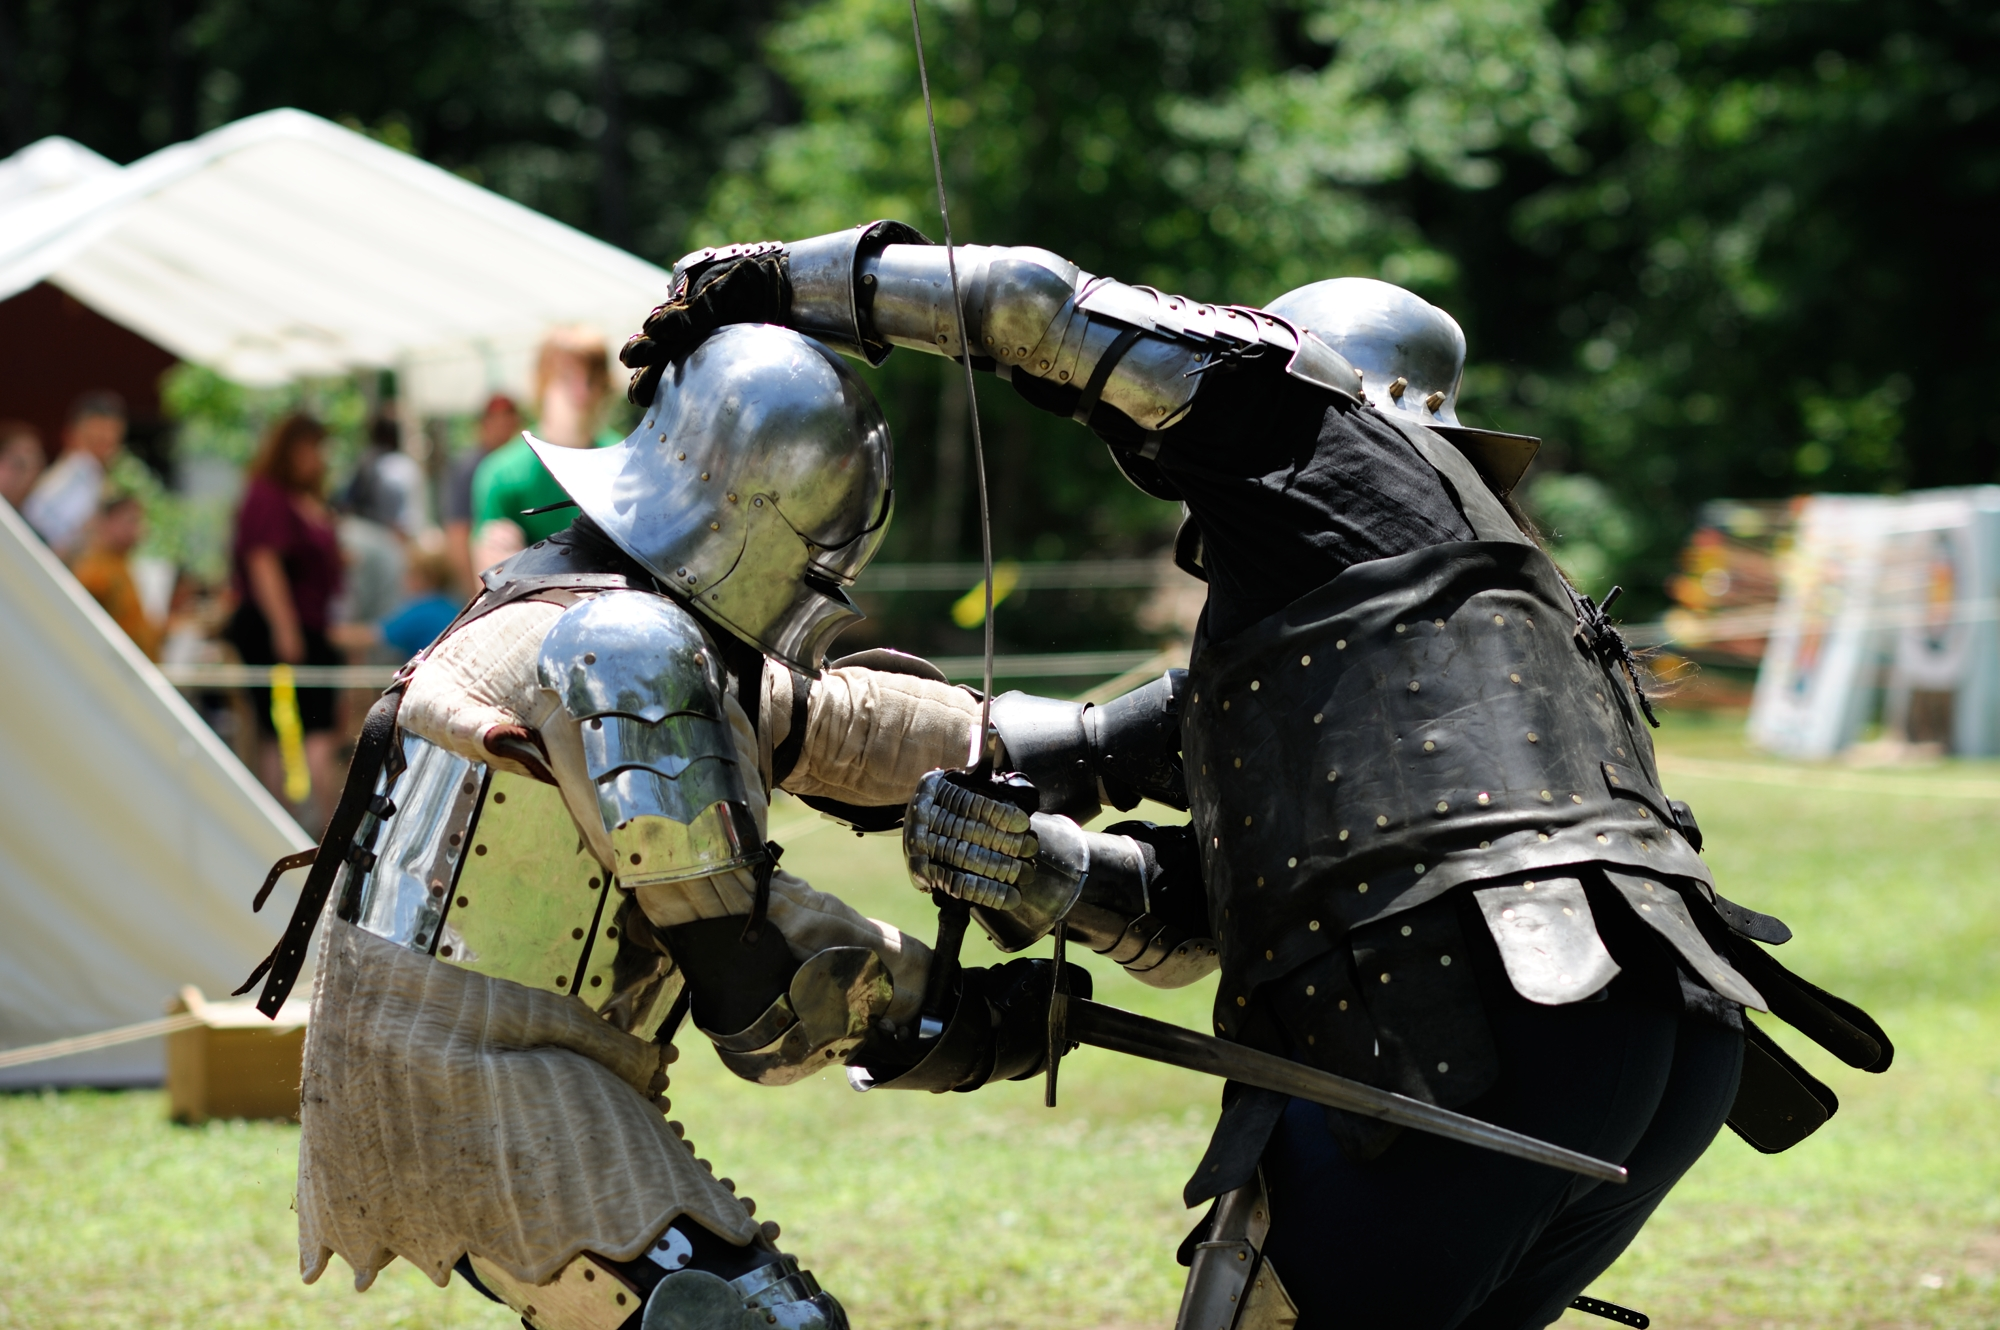 Sword Fighting, Renaissance Festival Full Armor